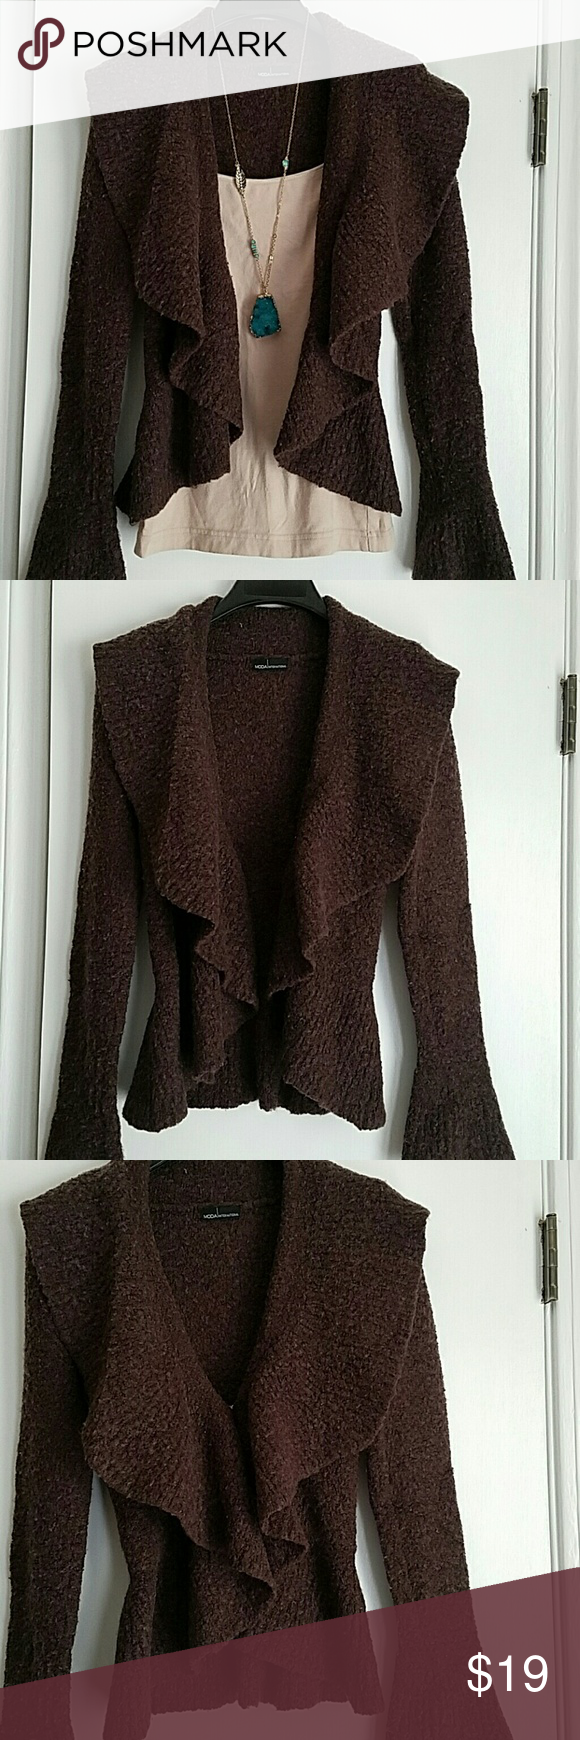 Moda International Cardigan Sweater Rare Find! Sweater-Cardigan with waterfall neckline and hook and eye closure.   Soft boucle knit in a brown  color.  Just throw over a cami and jeans and you have a perfect date night outfit. This is a steal? Moda International Sweaters Cardigans